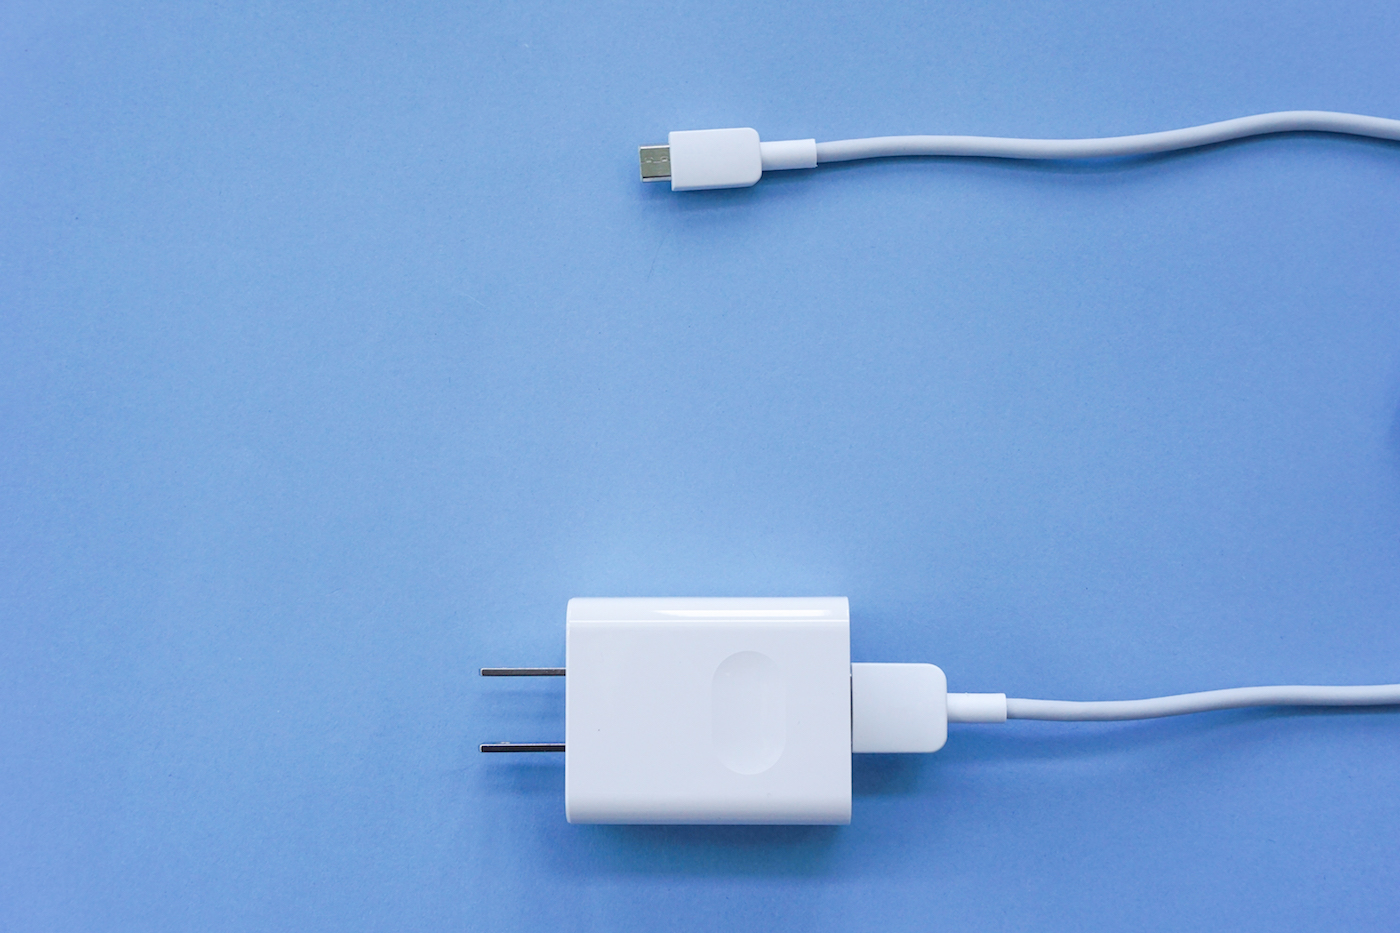 how to fix a frayed iphone charger